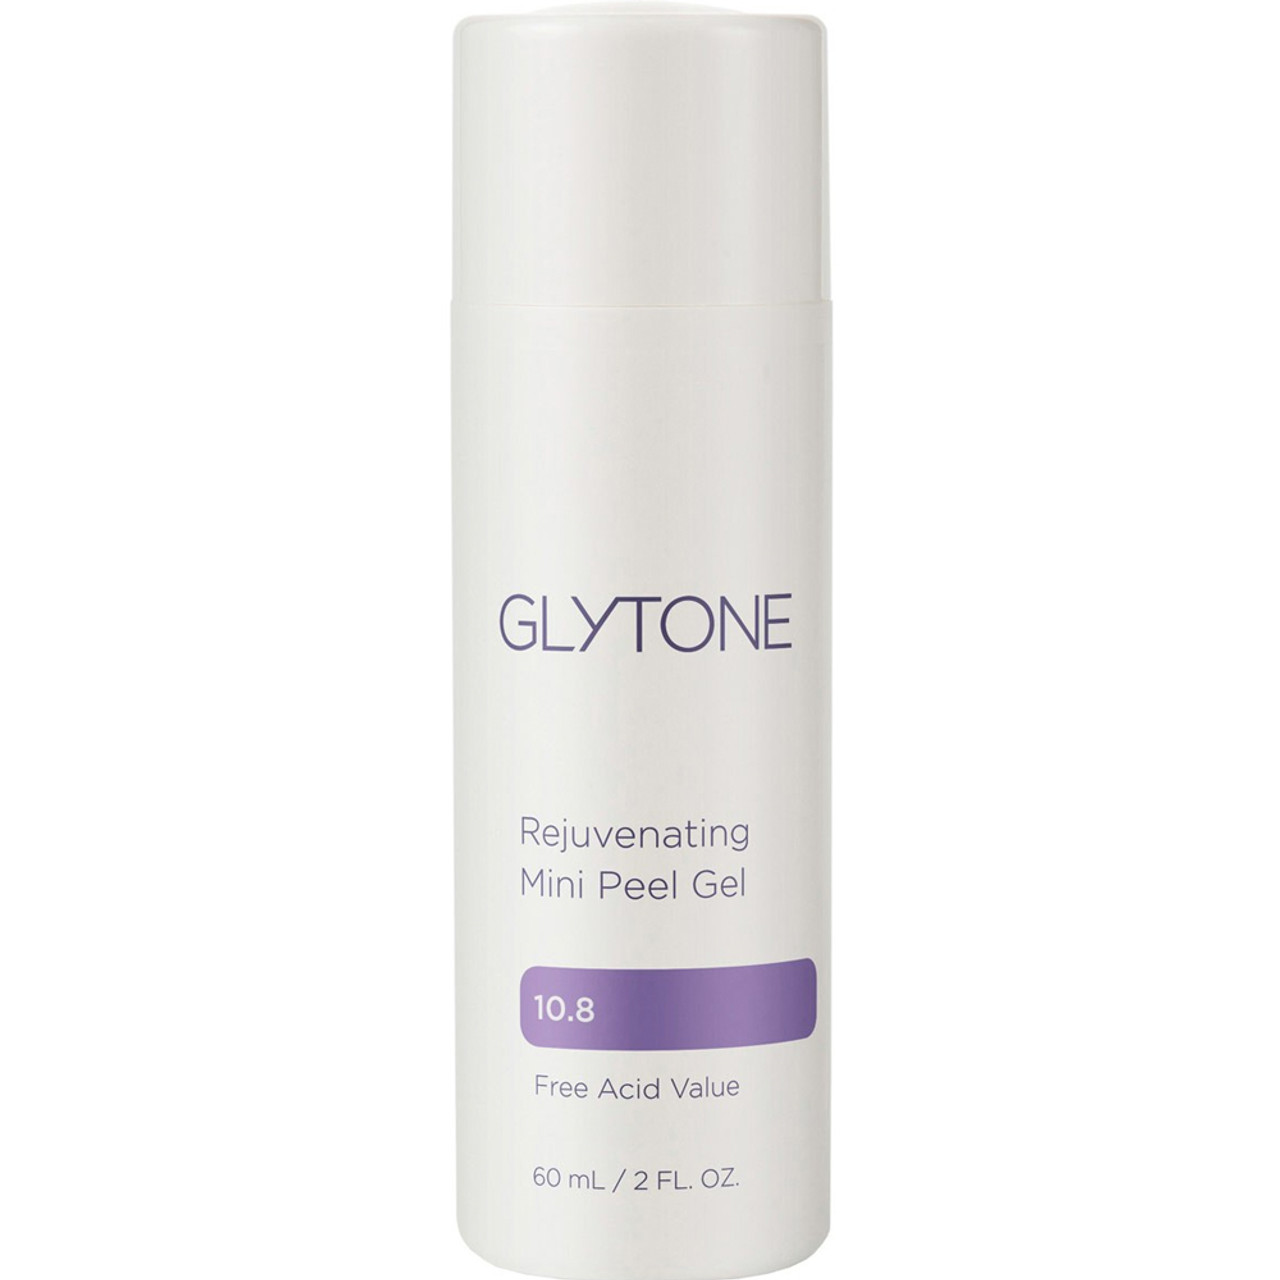 Glytone Rejuvenating Mini Peel Gel